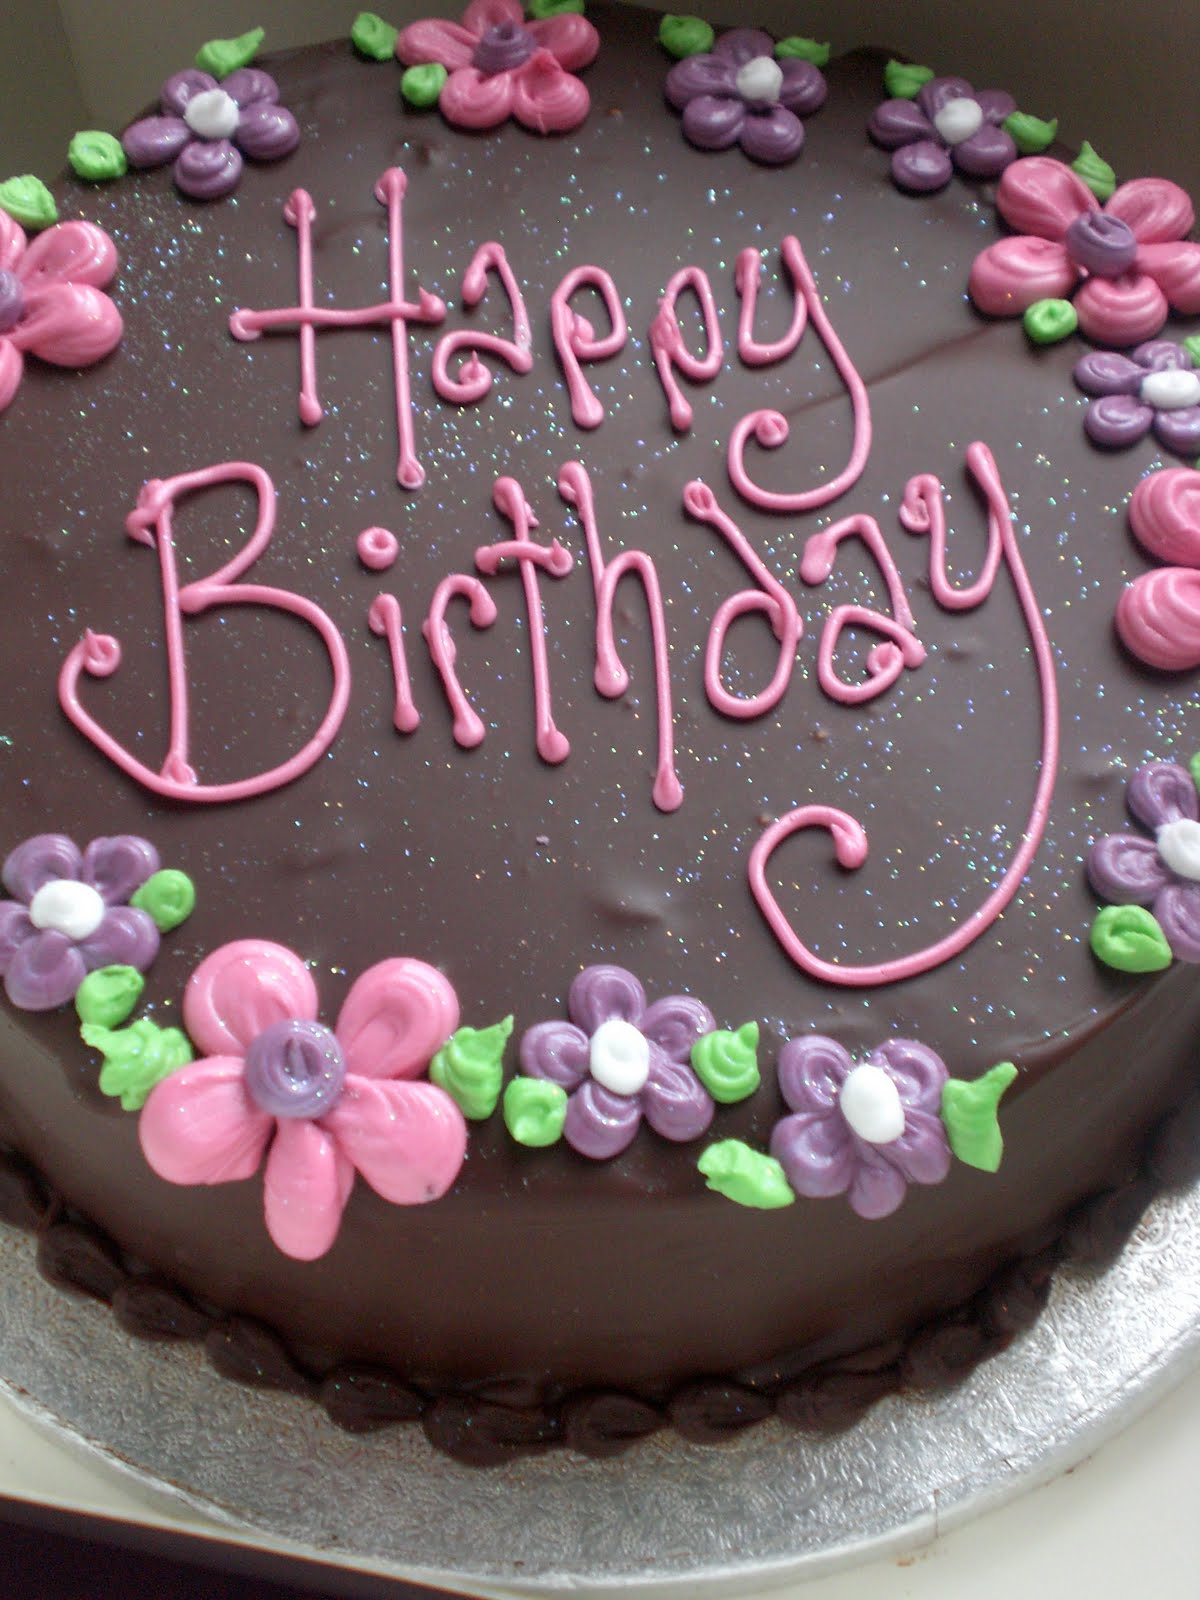 ... Wishes Cake Pictues Imags Quotes to You Jesus Sister Cards Funny